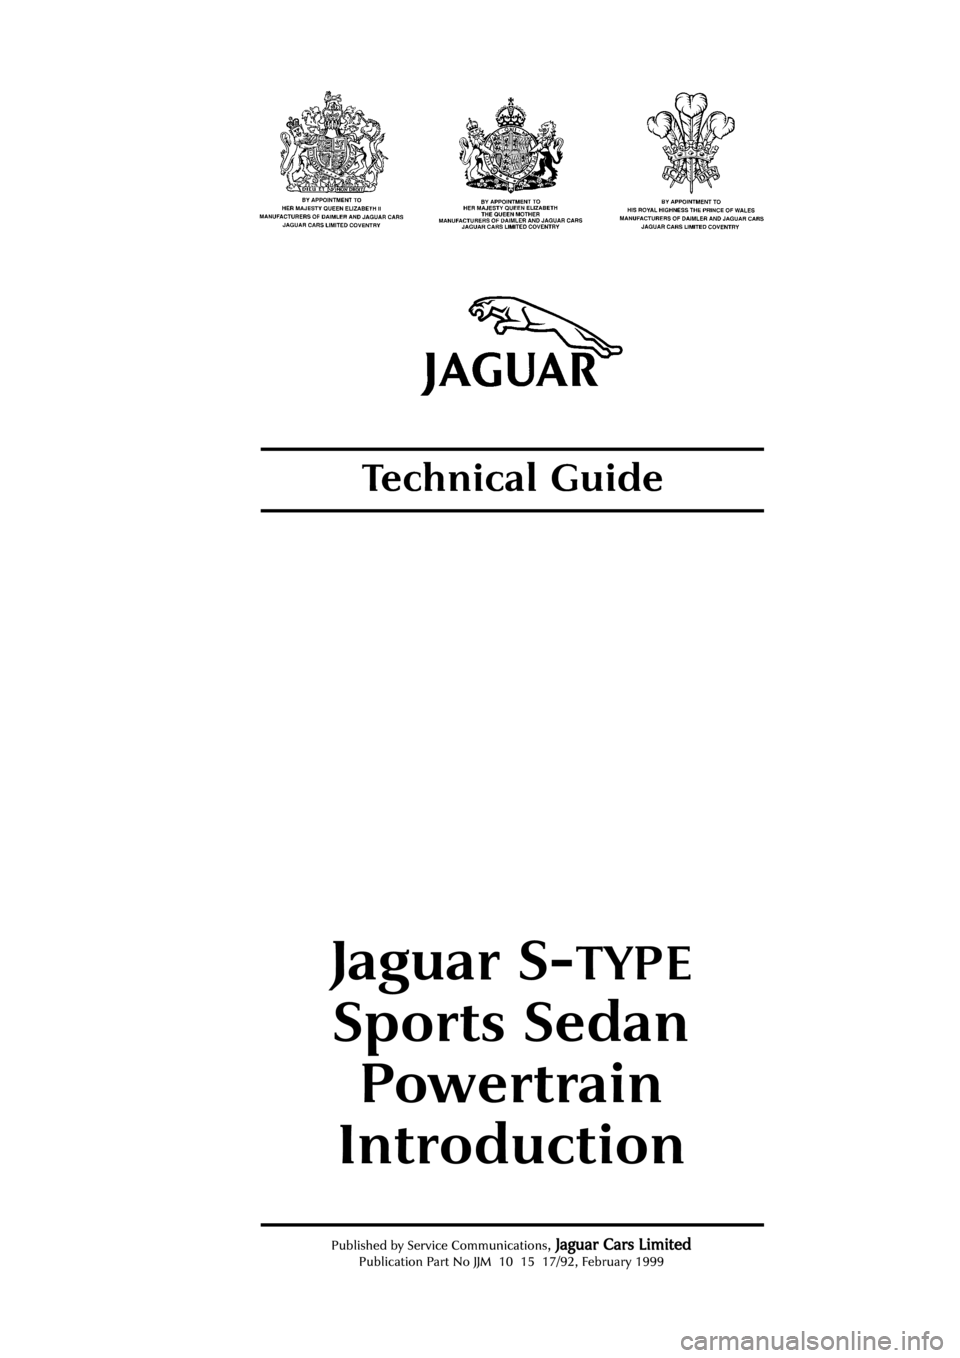 JAGUAR S TYPE 1999 1.G Powertrain Manual, Page 4